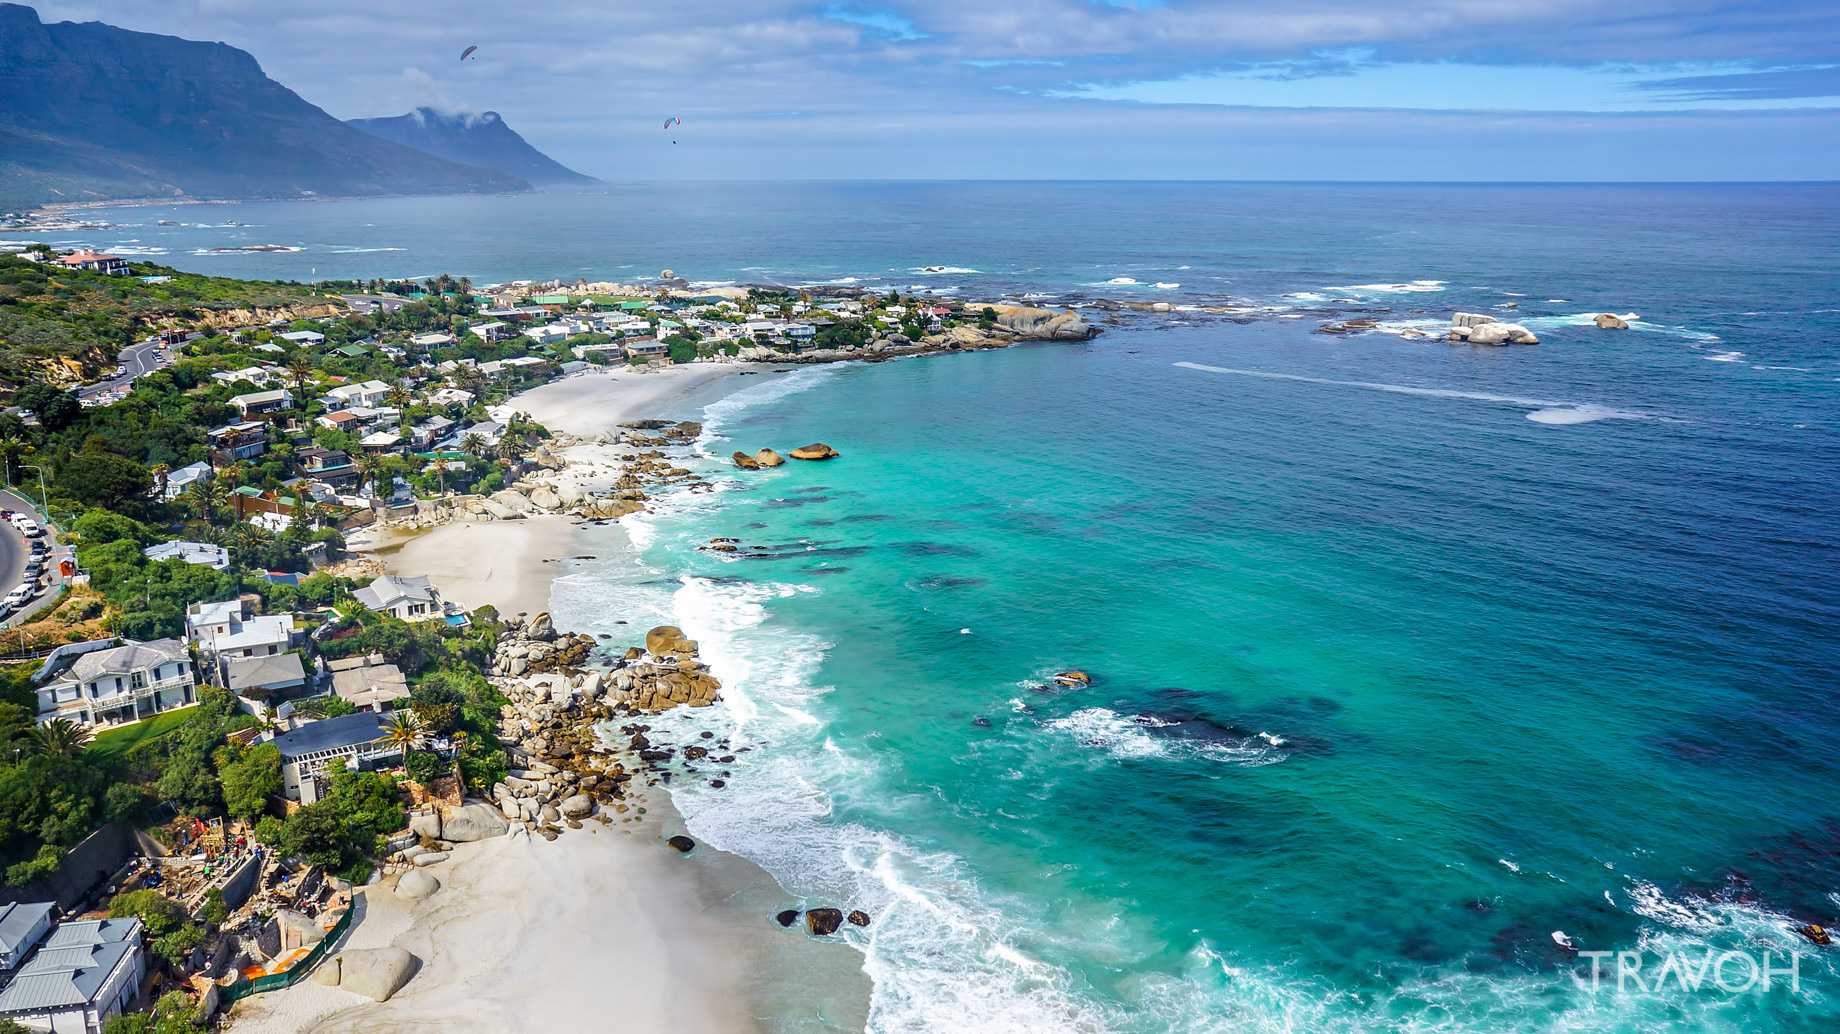 Clifton Beaches - Exploring 10 of the Top Beaches in Cape Town, South Africa